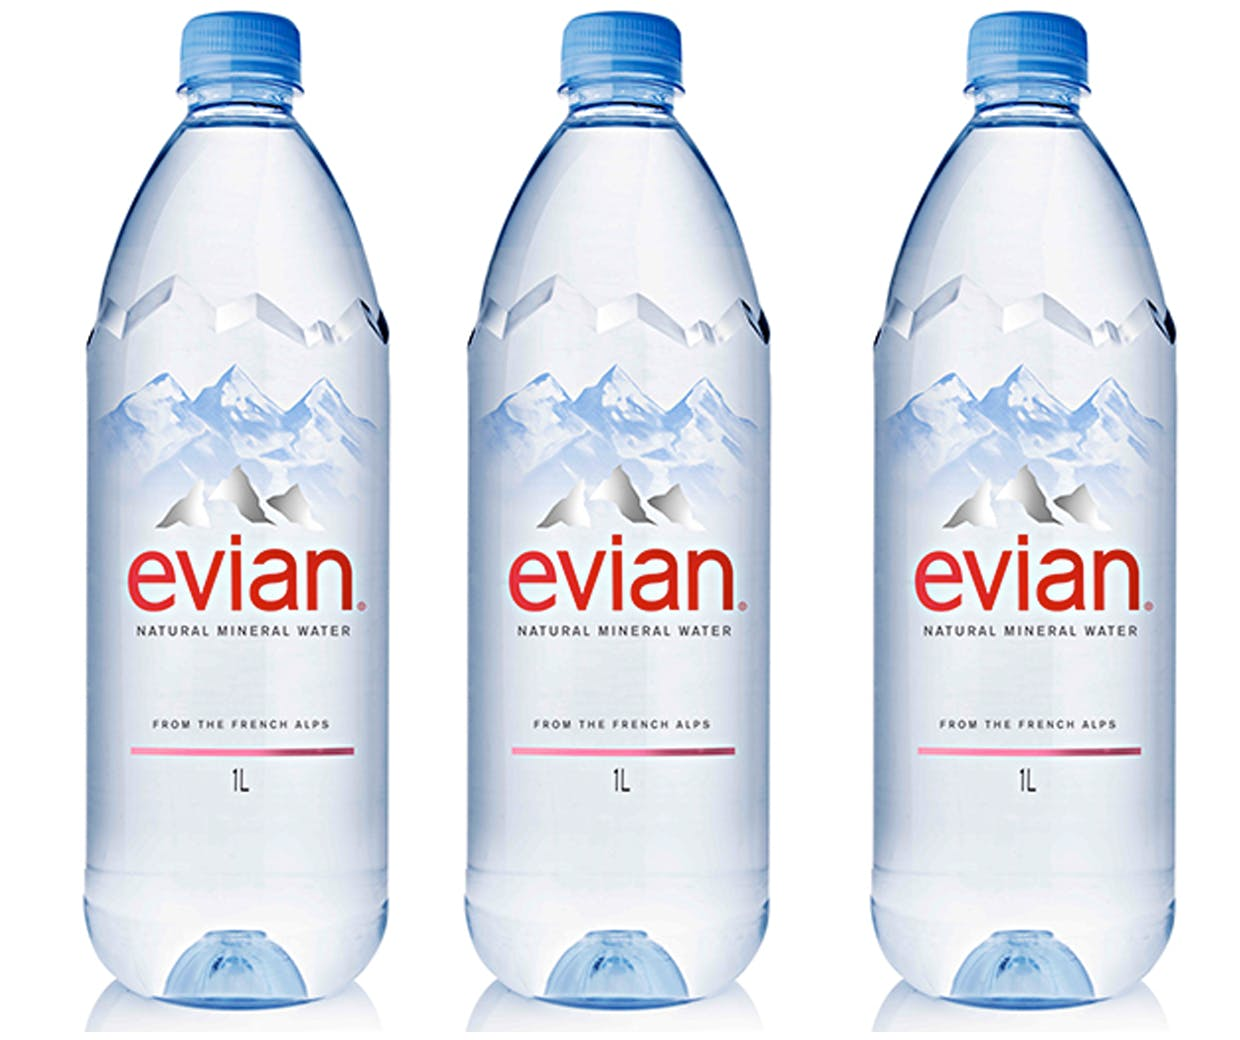 marketing mix of evian water Marketing plan executive summary the fit mix protein water mix is a new product that is being launched this consultative report presents a marketing plan for the company developing the product the recent political and social trends towards healthier lifestyles have increased the market for health drinks.